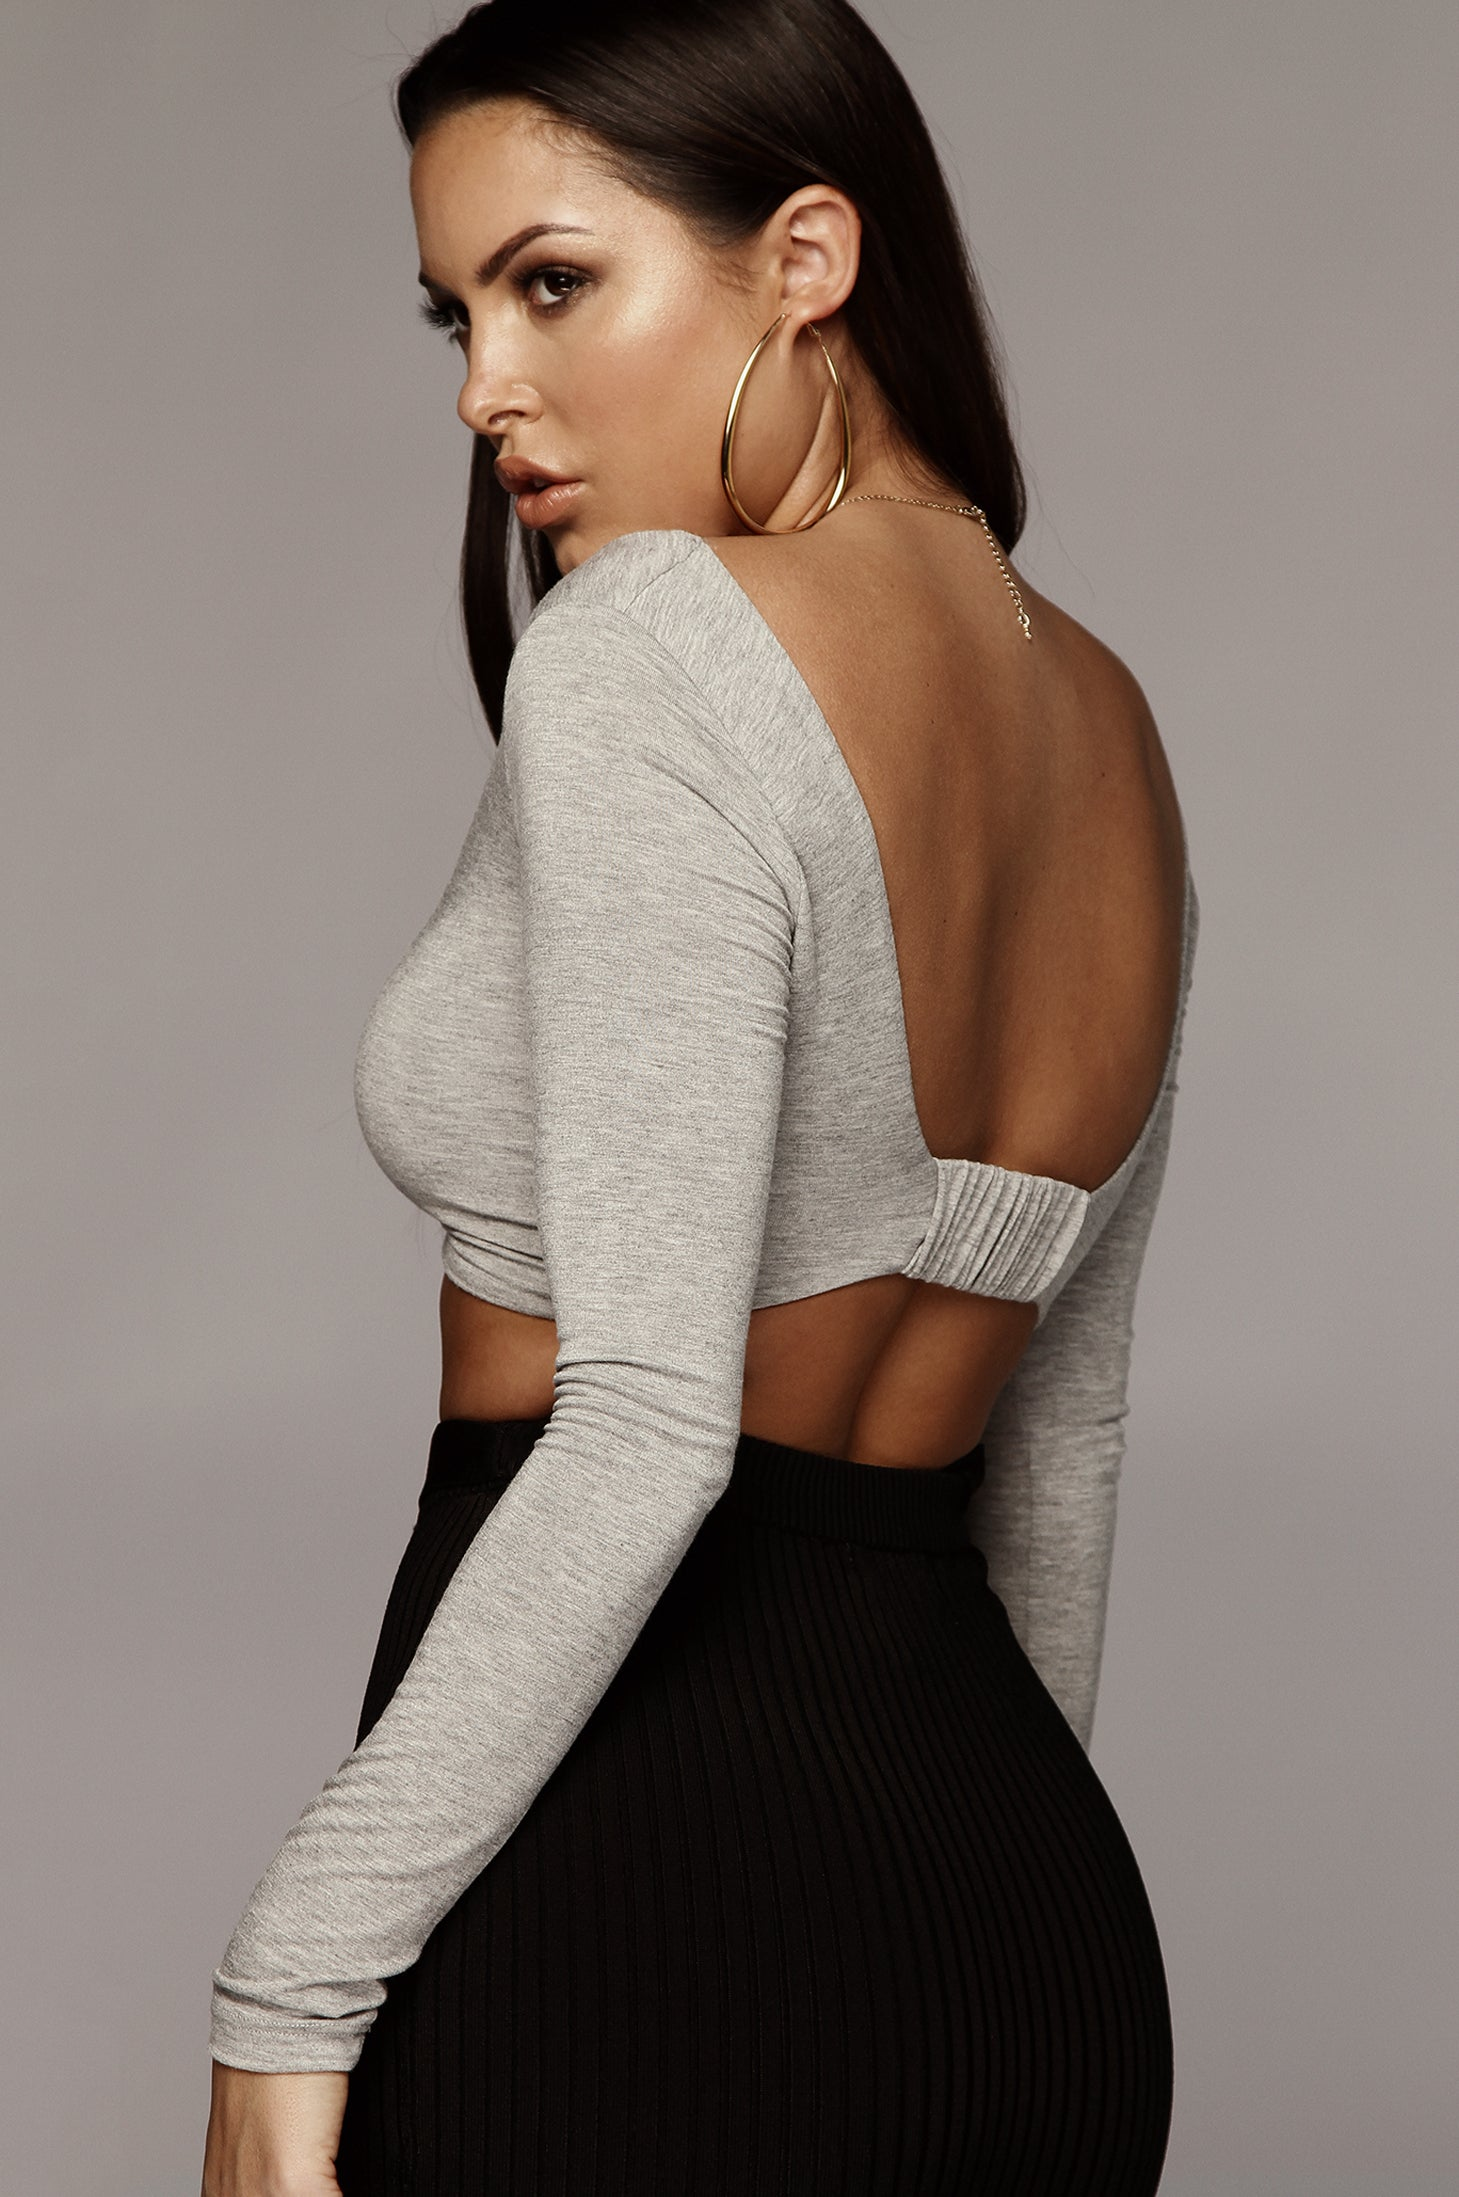 Grey Leslie Open Back JLUXBASIX Crop